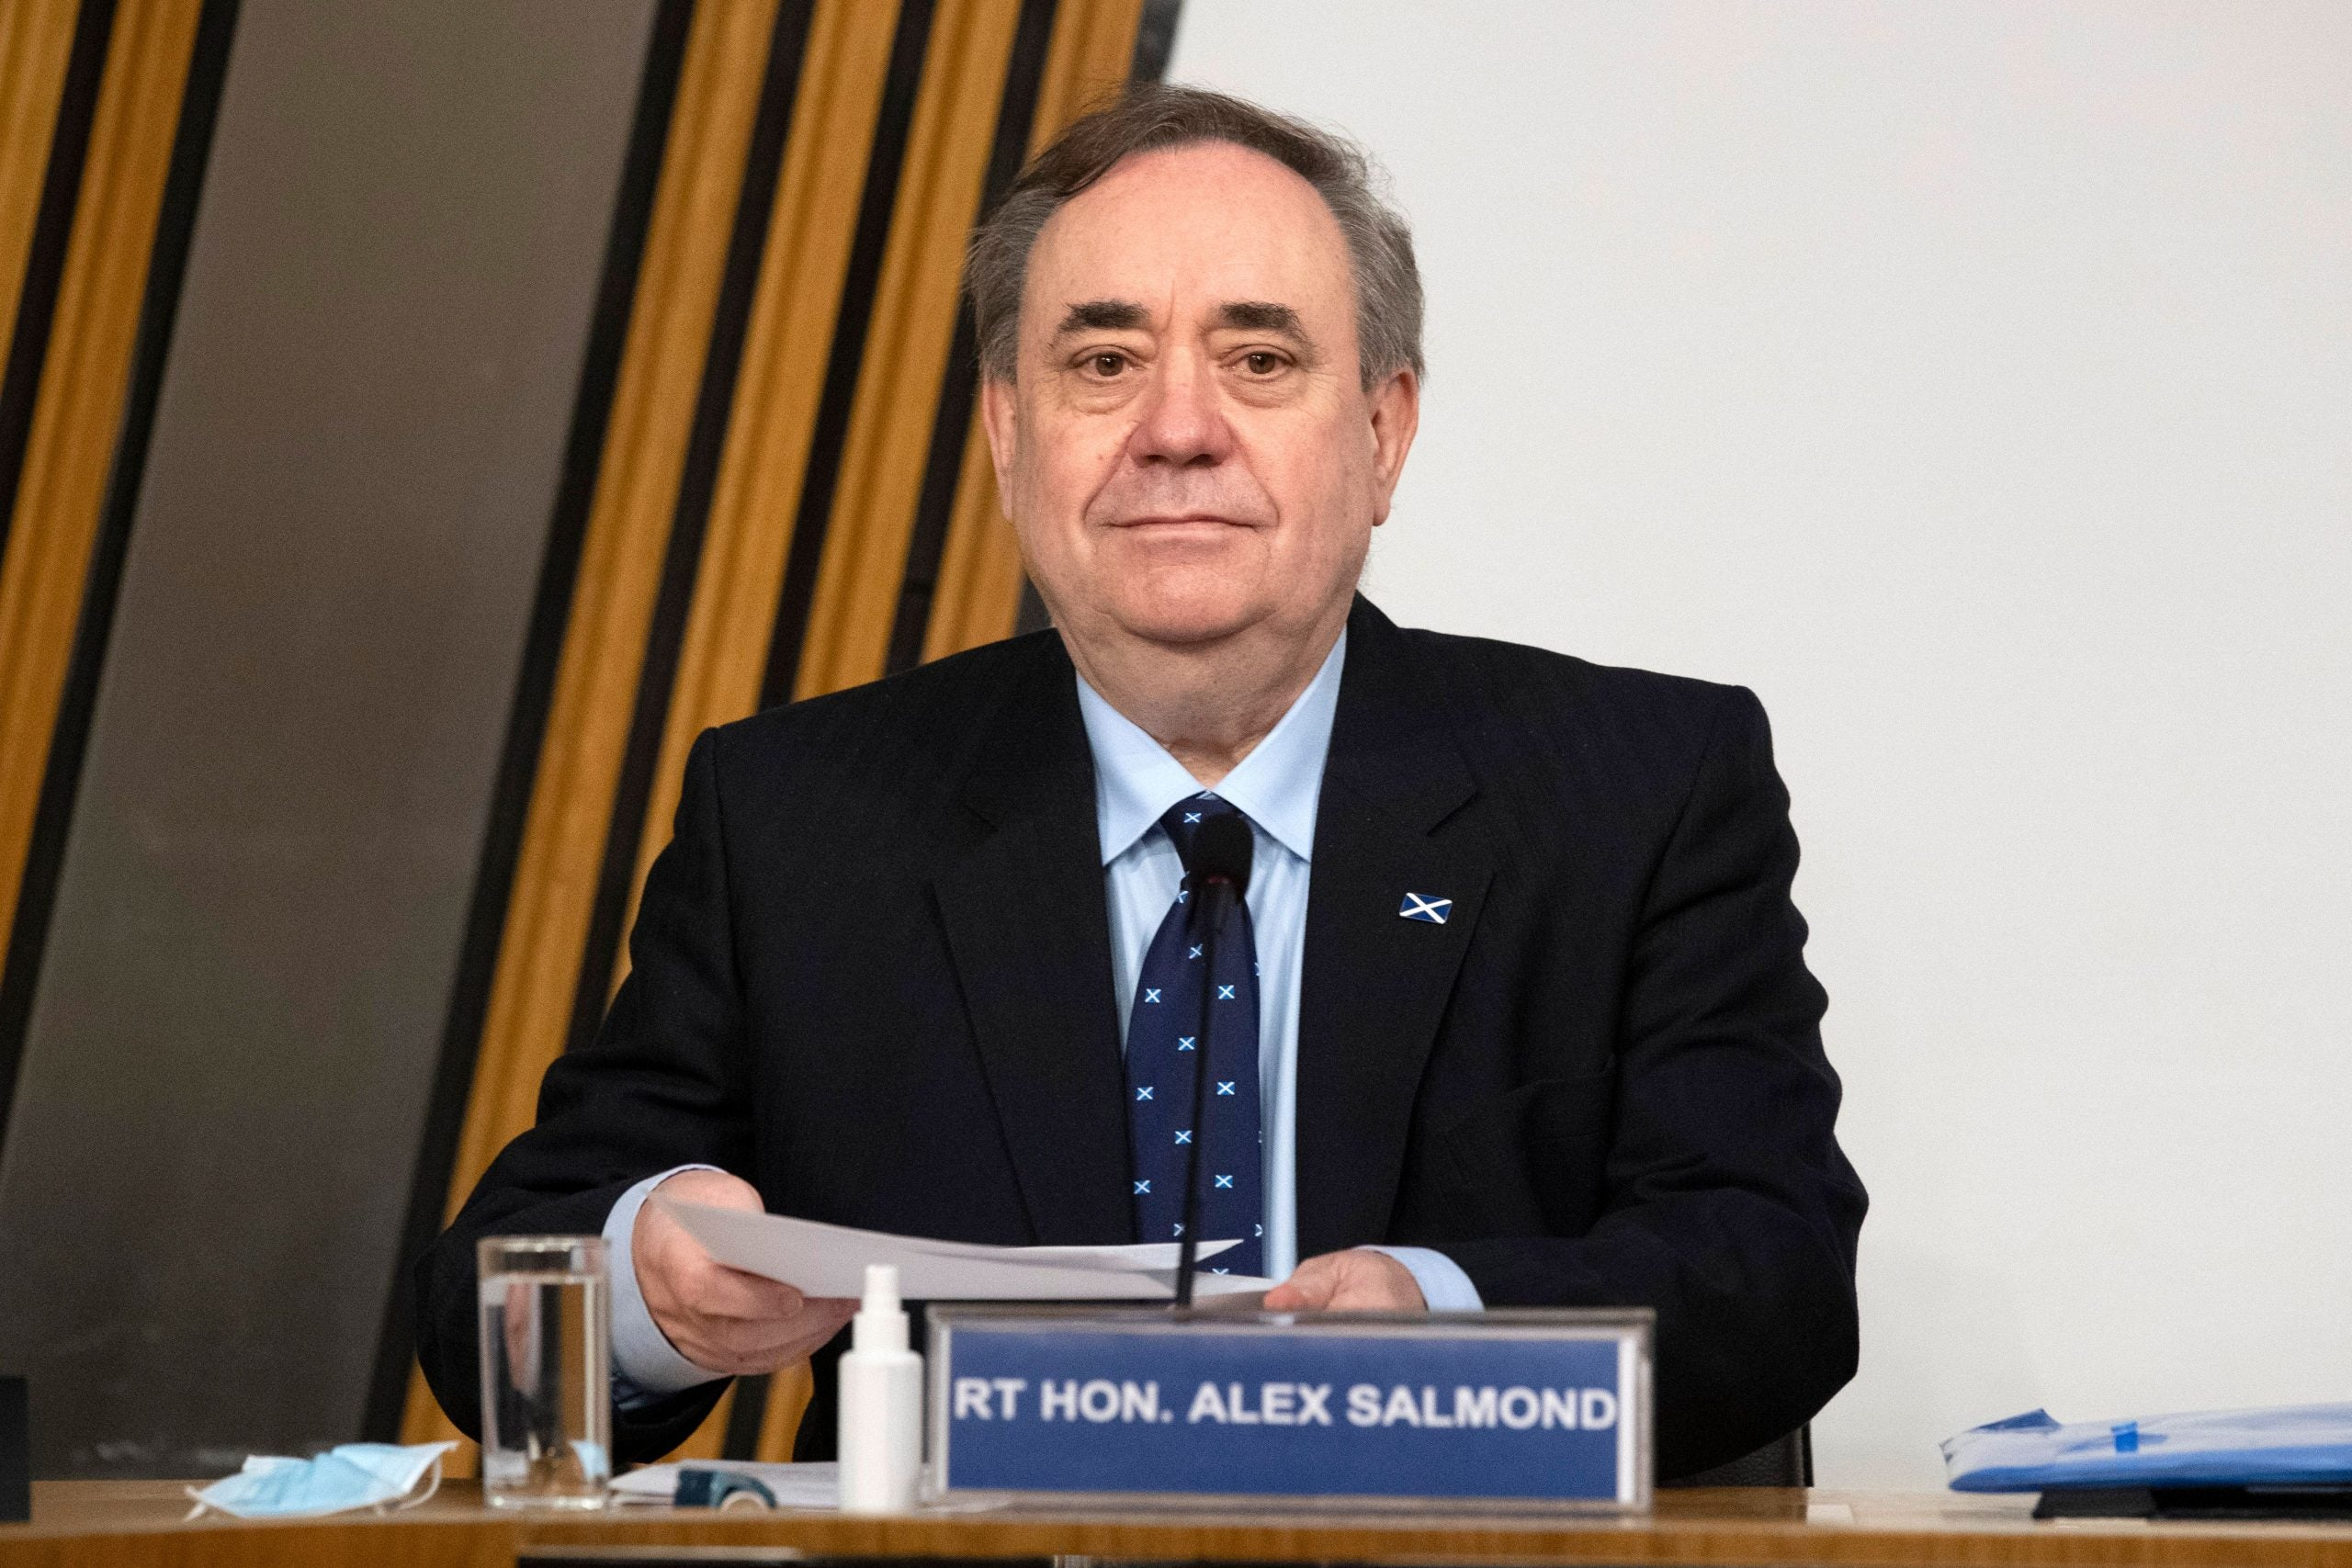 After a formidable performance, Alex Salmond may yet have his revenge on Nicola Sturgeon